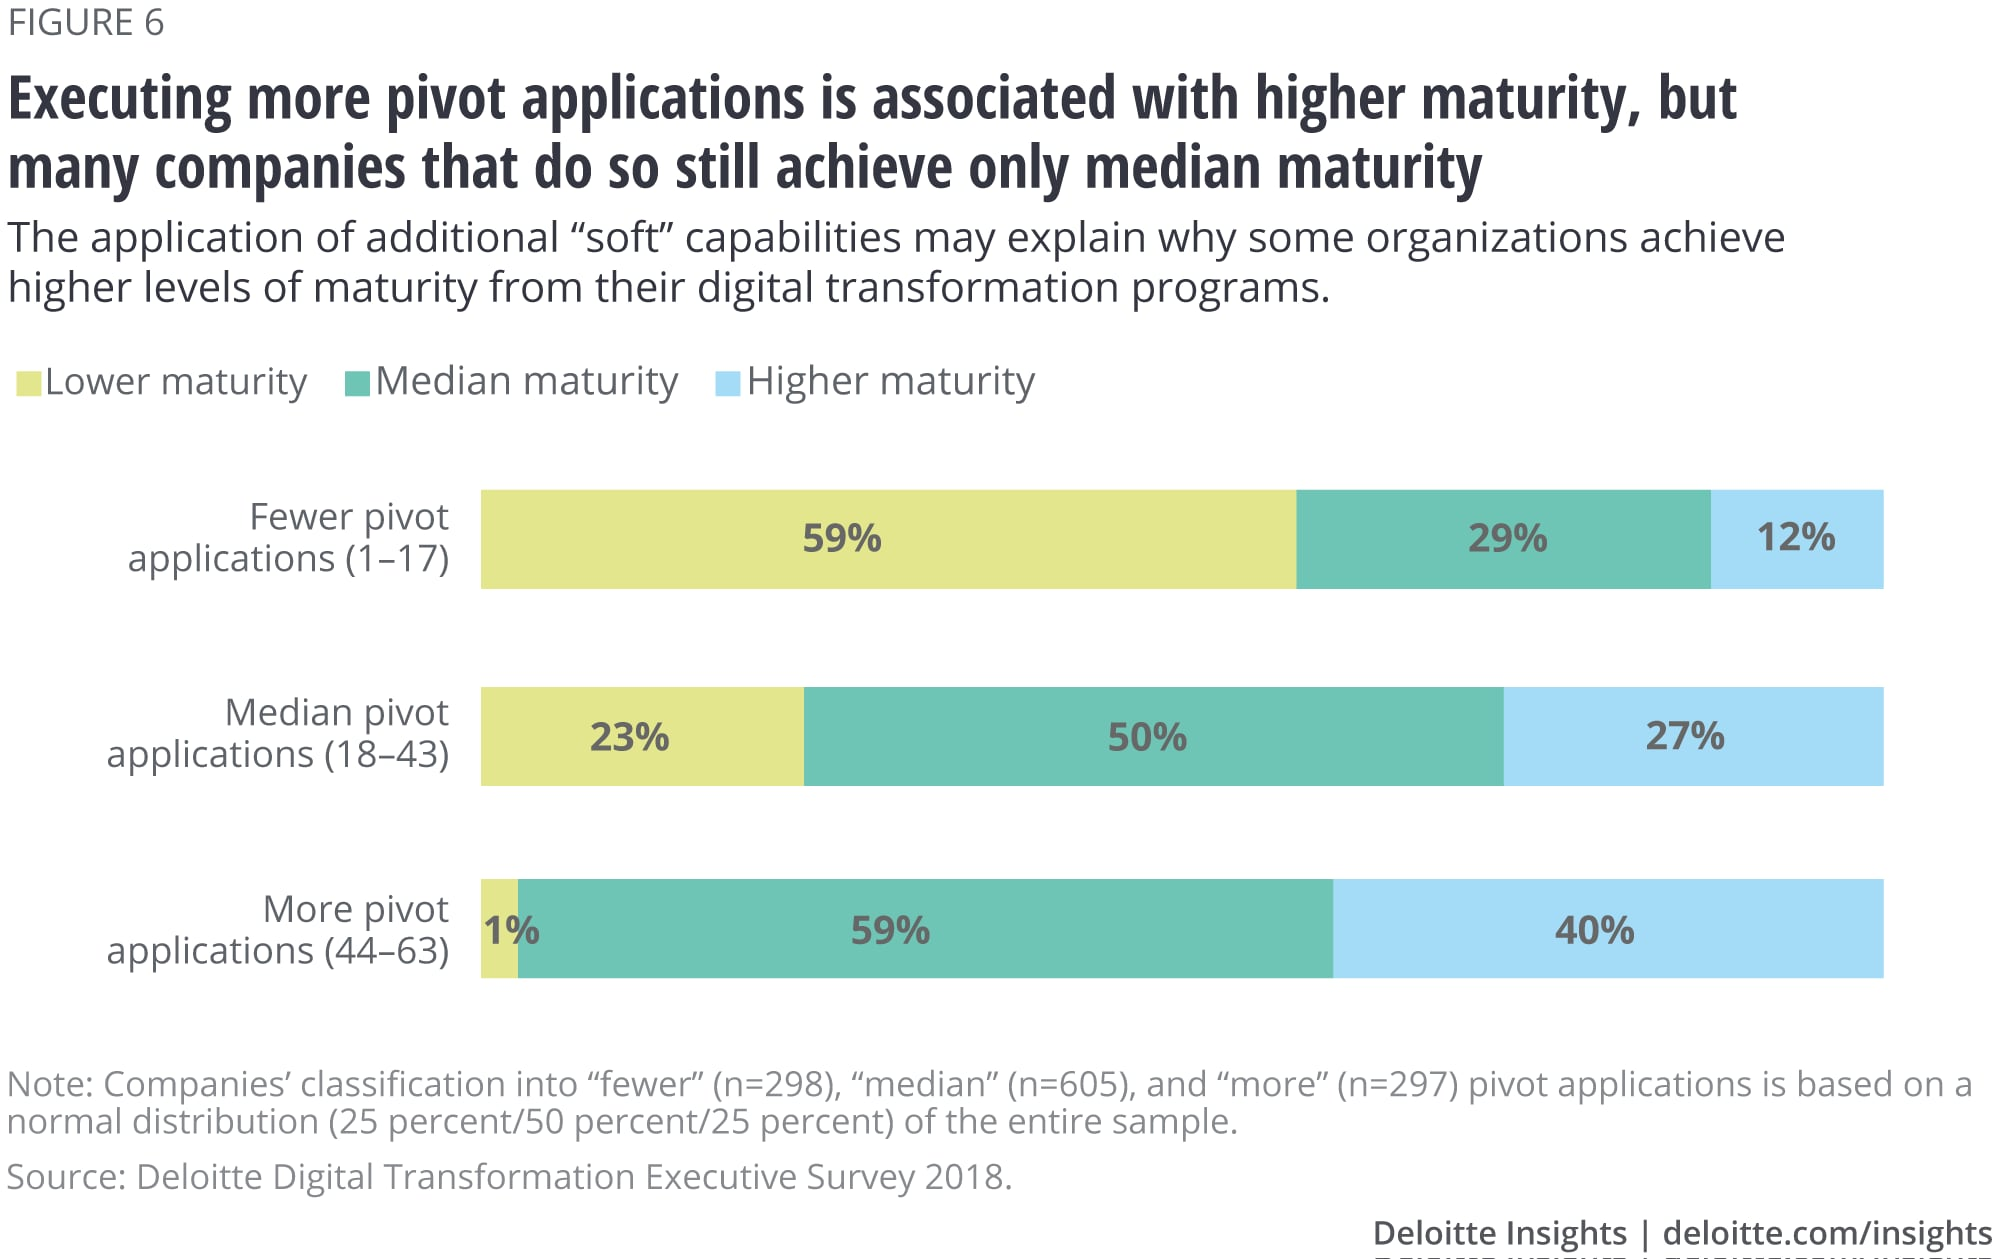 Executing more pivot applications is associated with higher maturity, but many companies that do so still achieve only median maturity